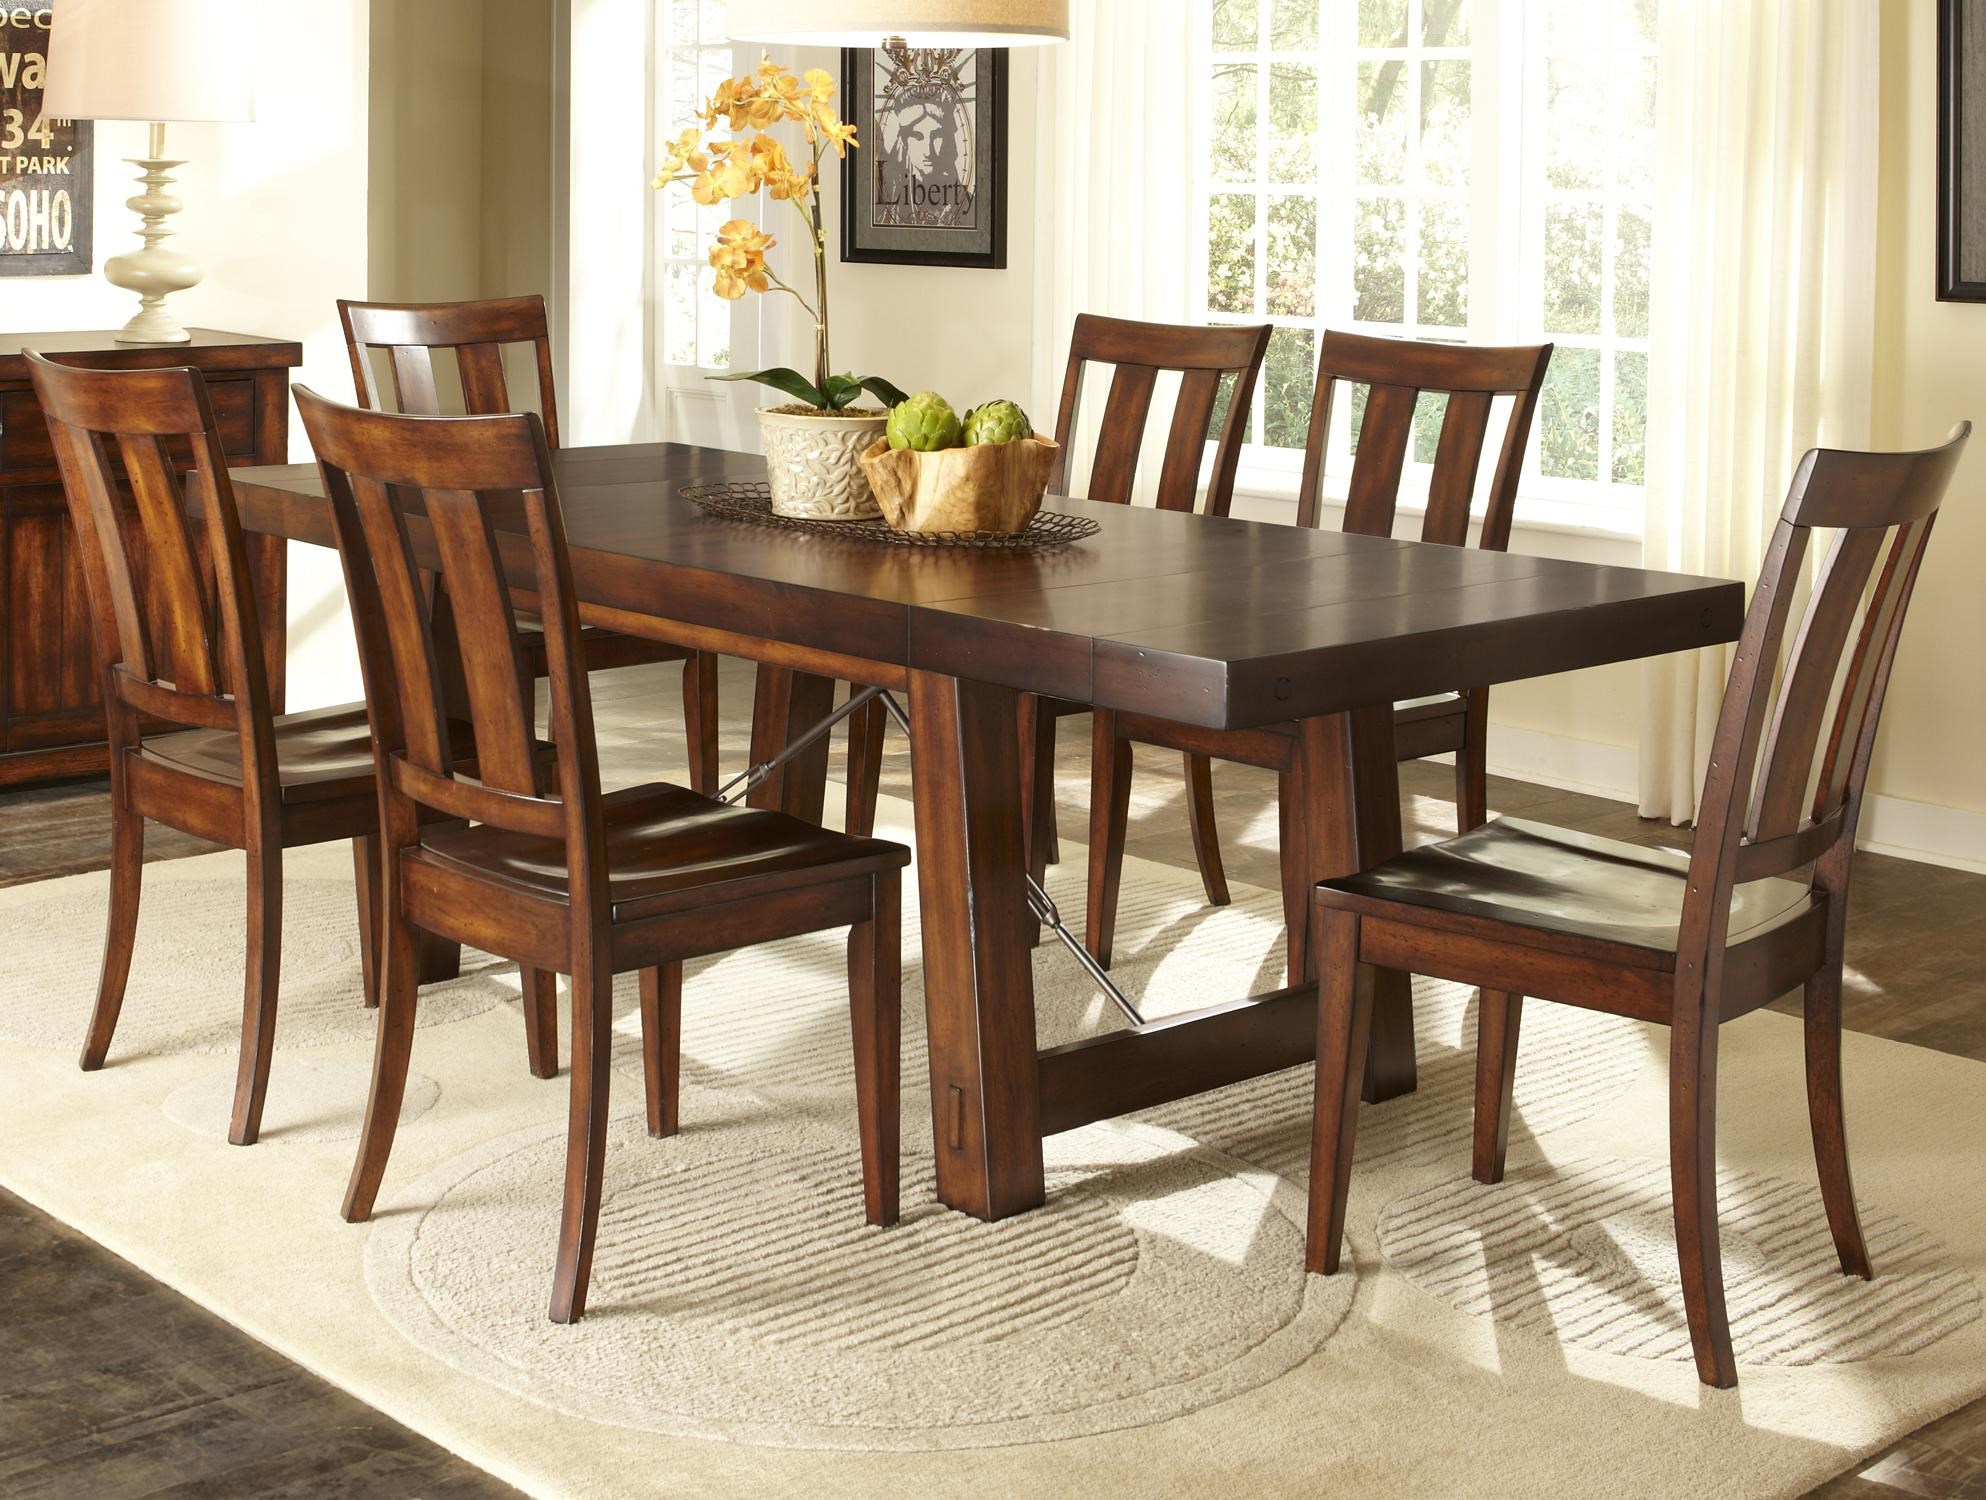 Liberty Furniture Tahoe 7 Piece Dining Table With Slat Back Chair Set